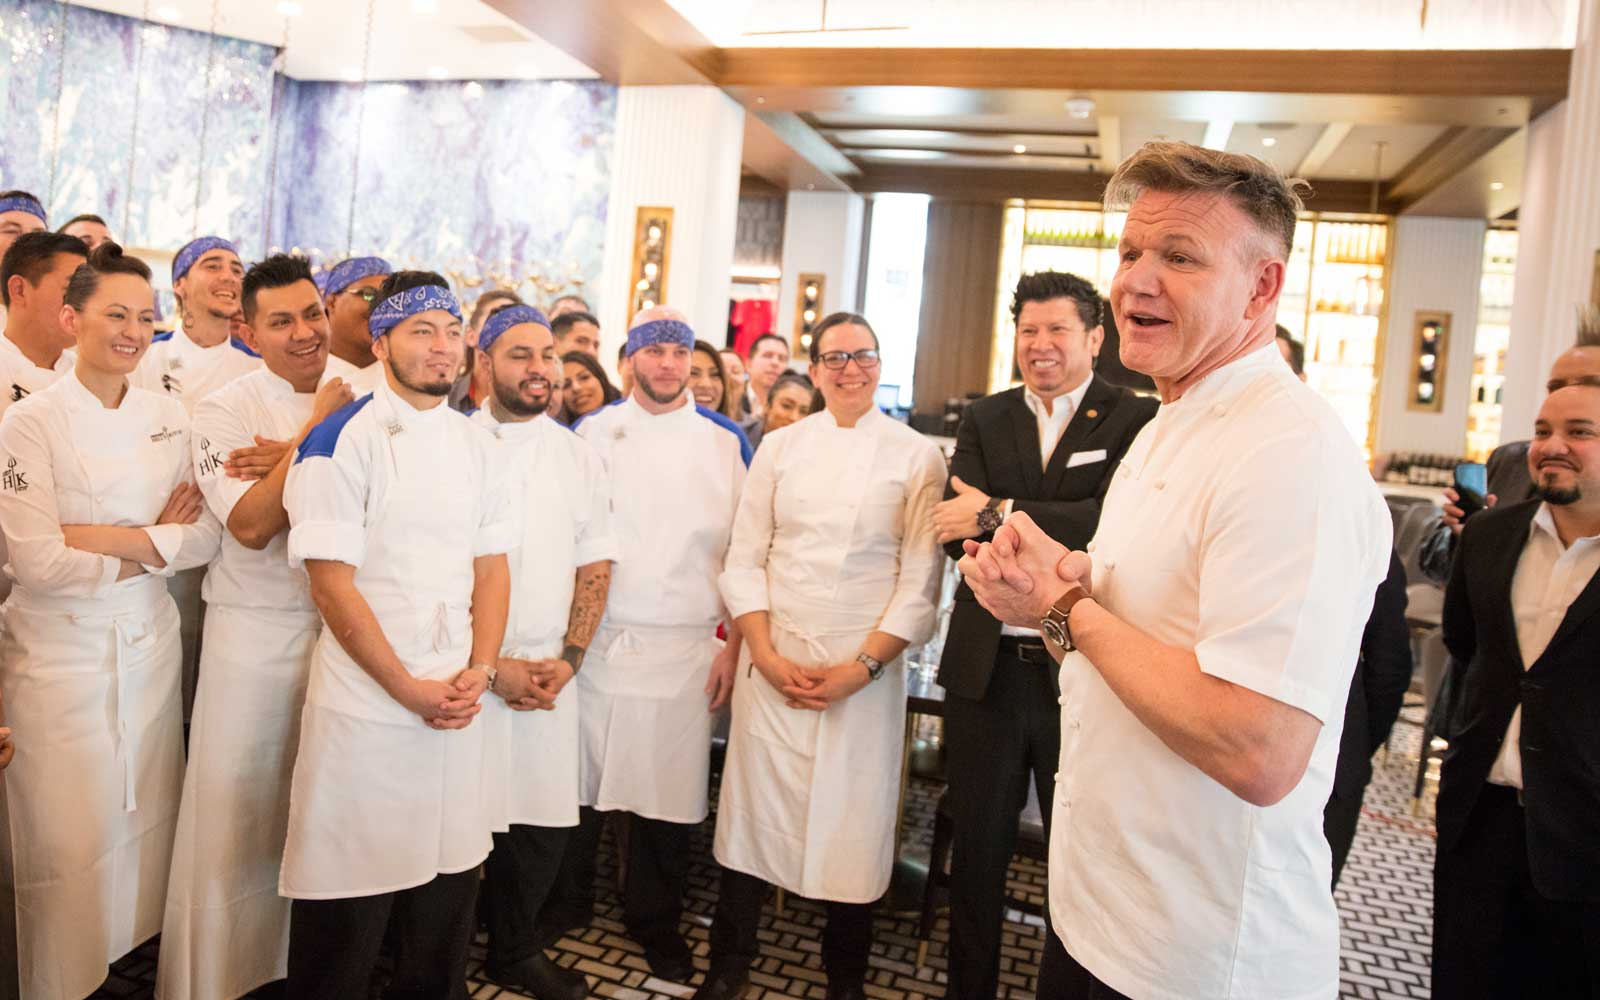 Gordon Ramsay's New Hell's Kitchen Restaurant Is a Reality Show Come to Blazing Life